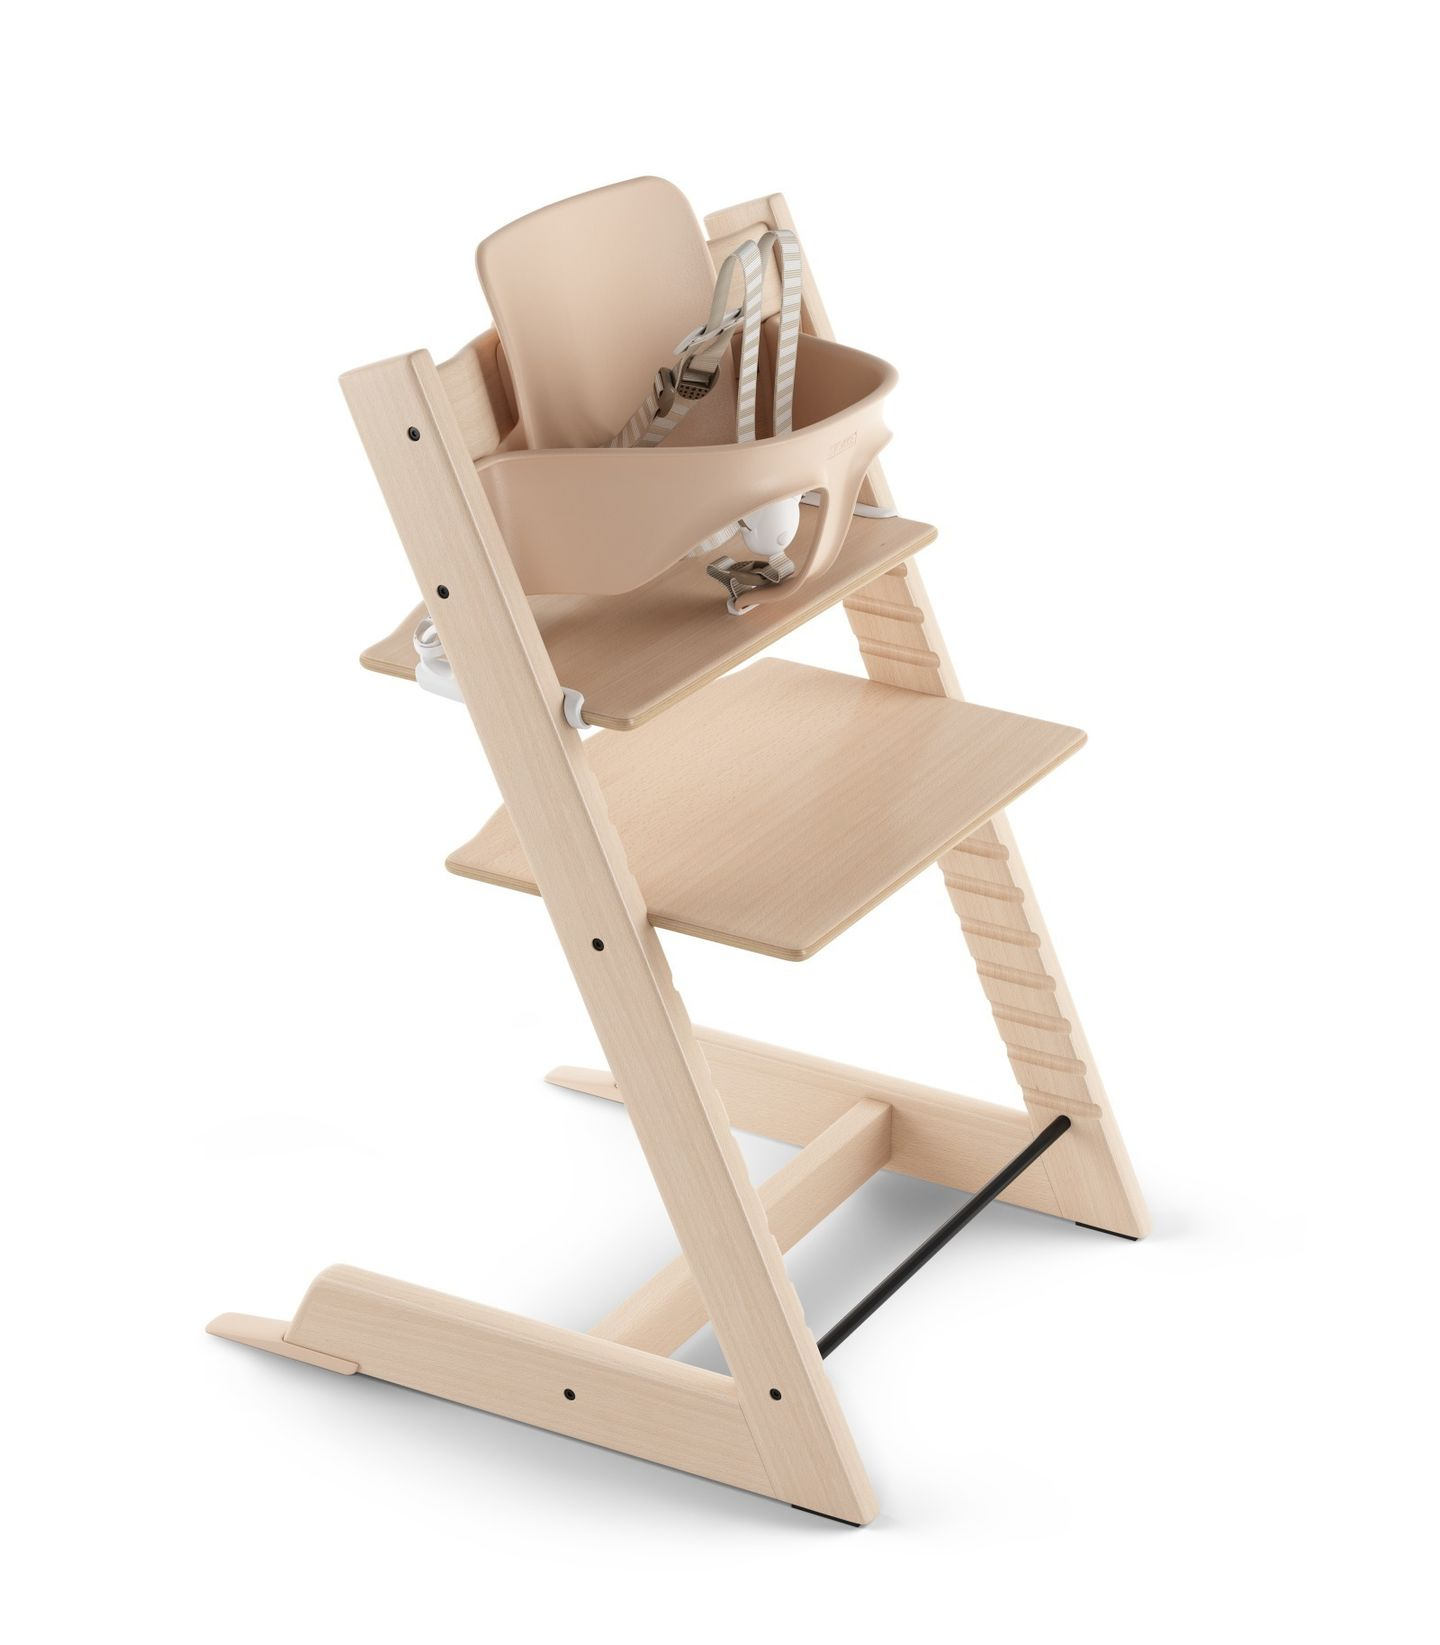 Harnessing Childrens Natural Ways Of >> Stokke Tripp Trapp Baby Set With Harness Natural Destination